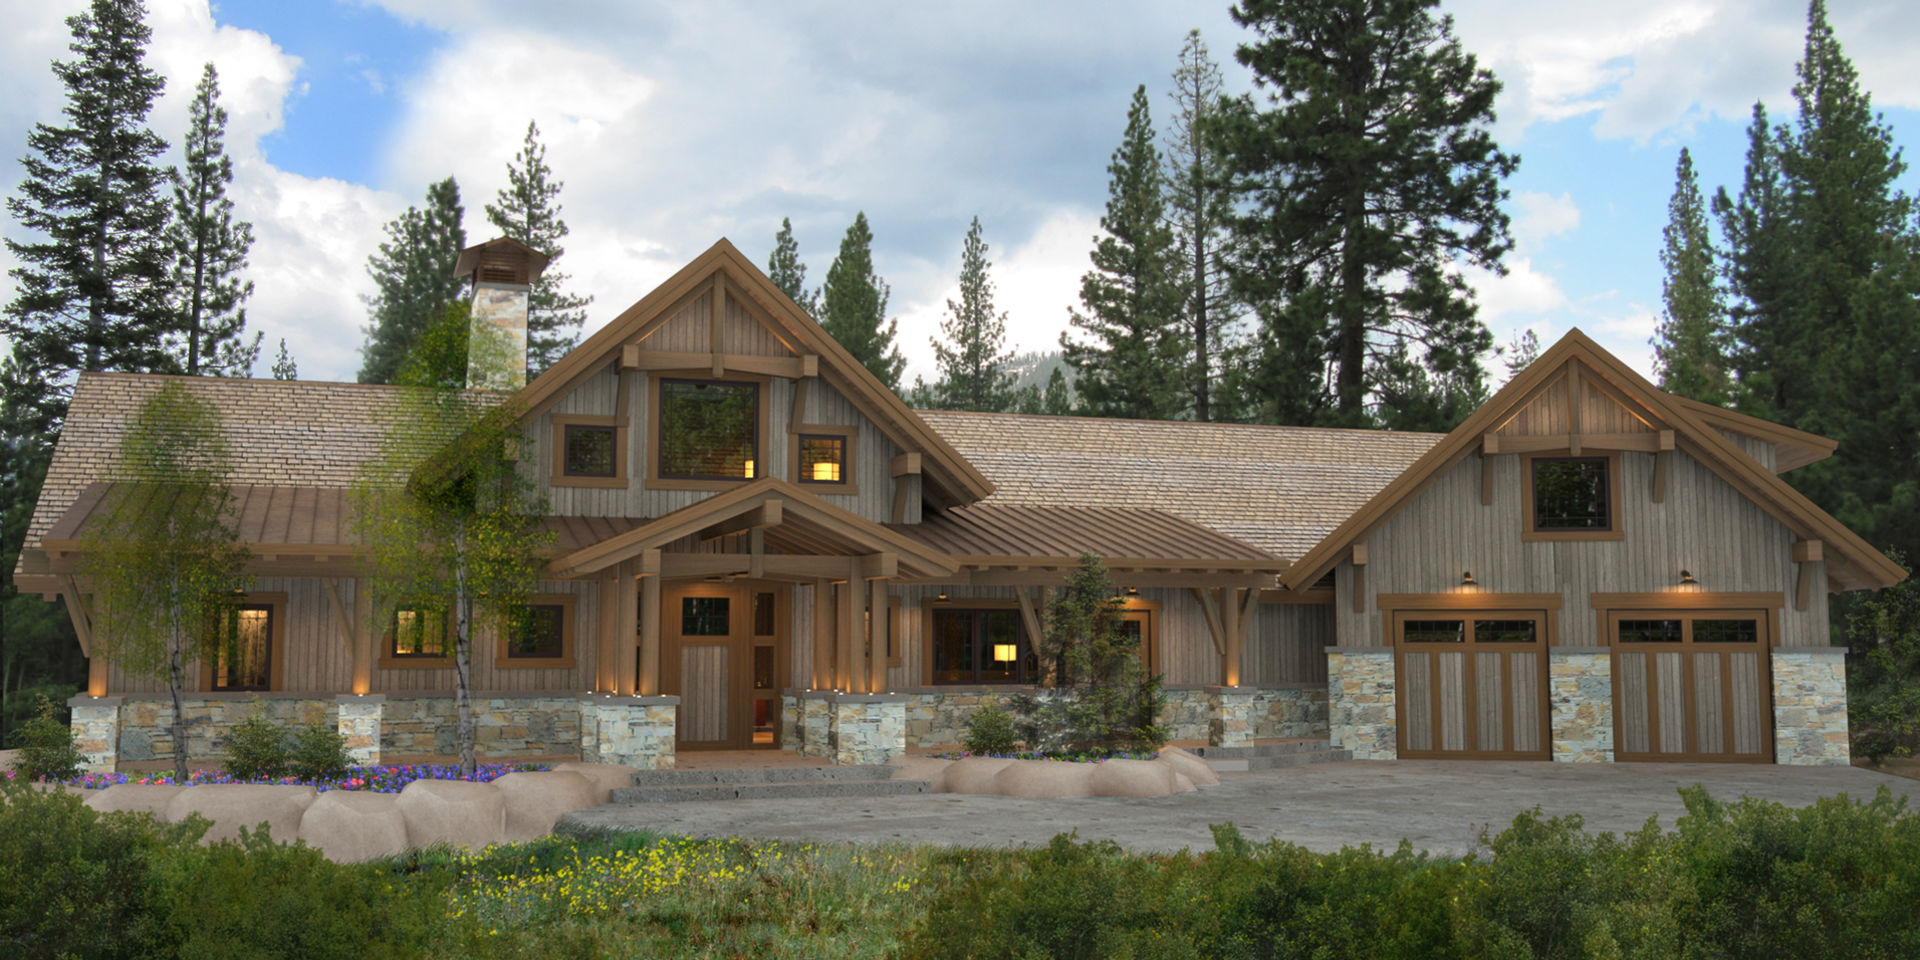 OUR HOUSE DESIGNS - Timber frame homes plans